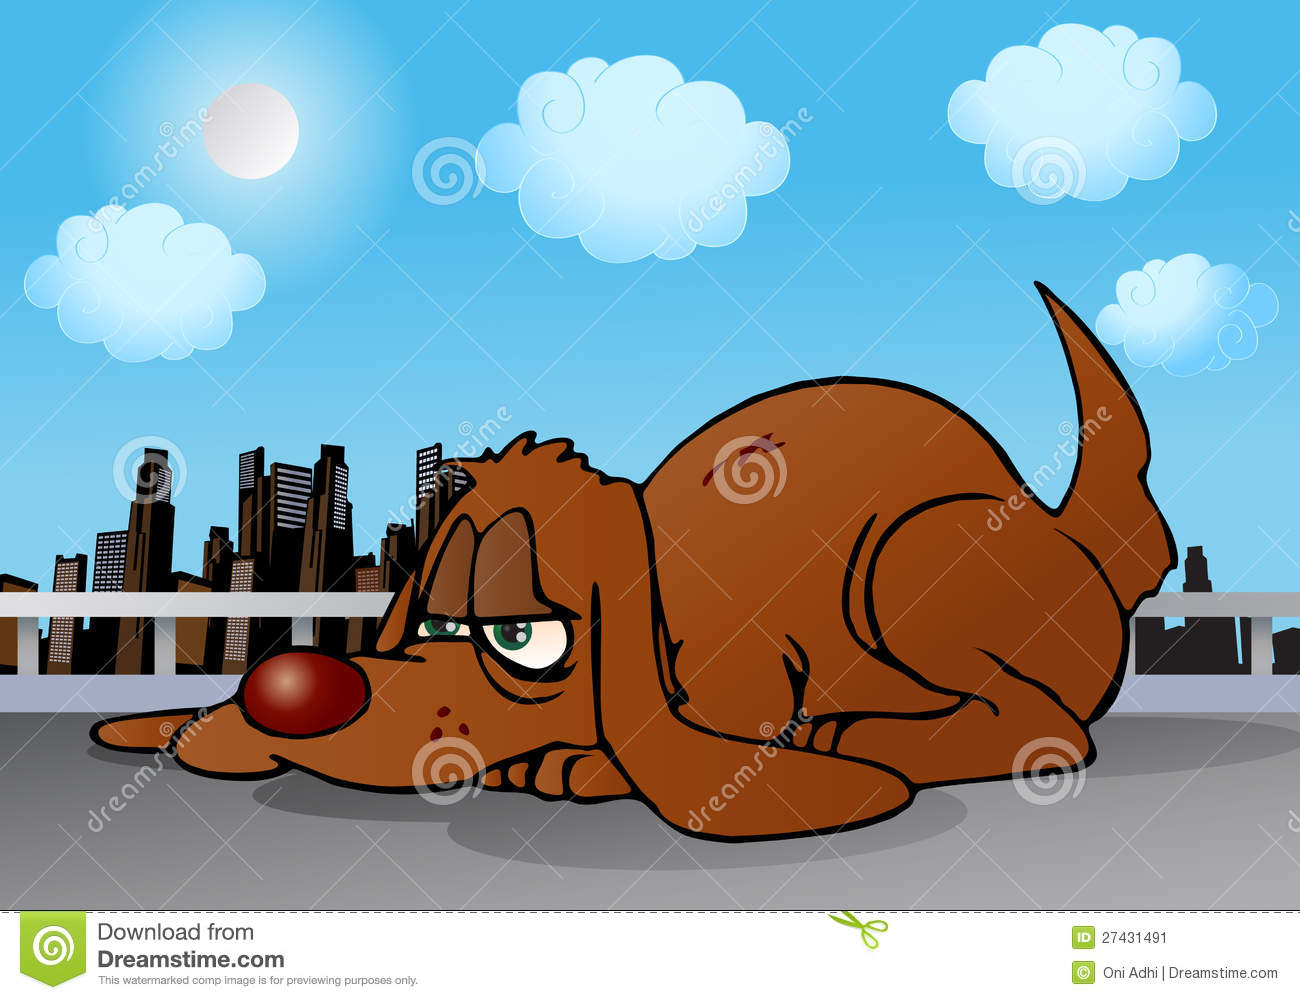 lazy cat clipart - photo #28